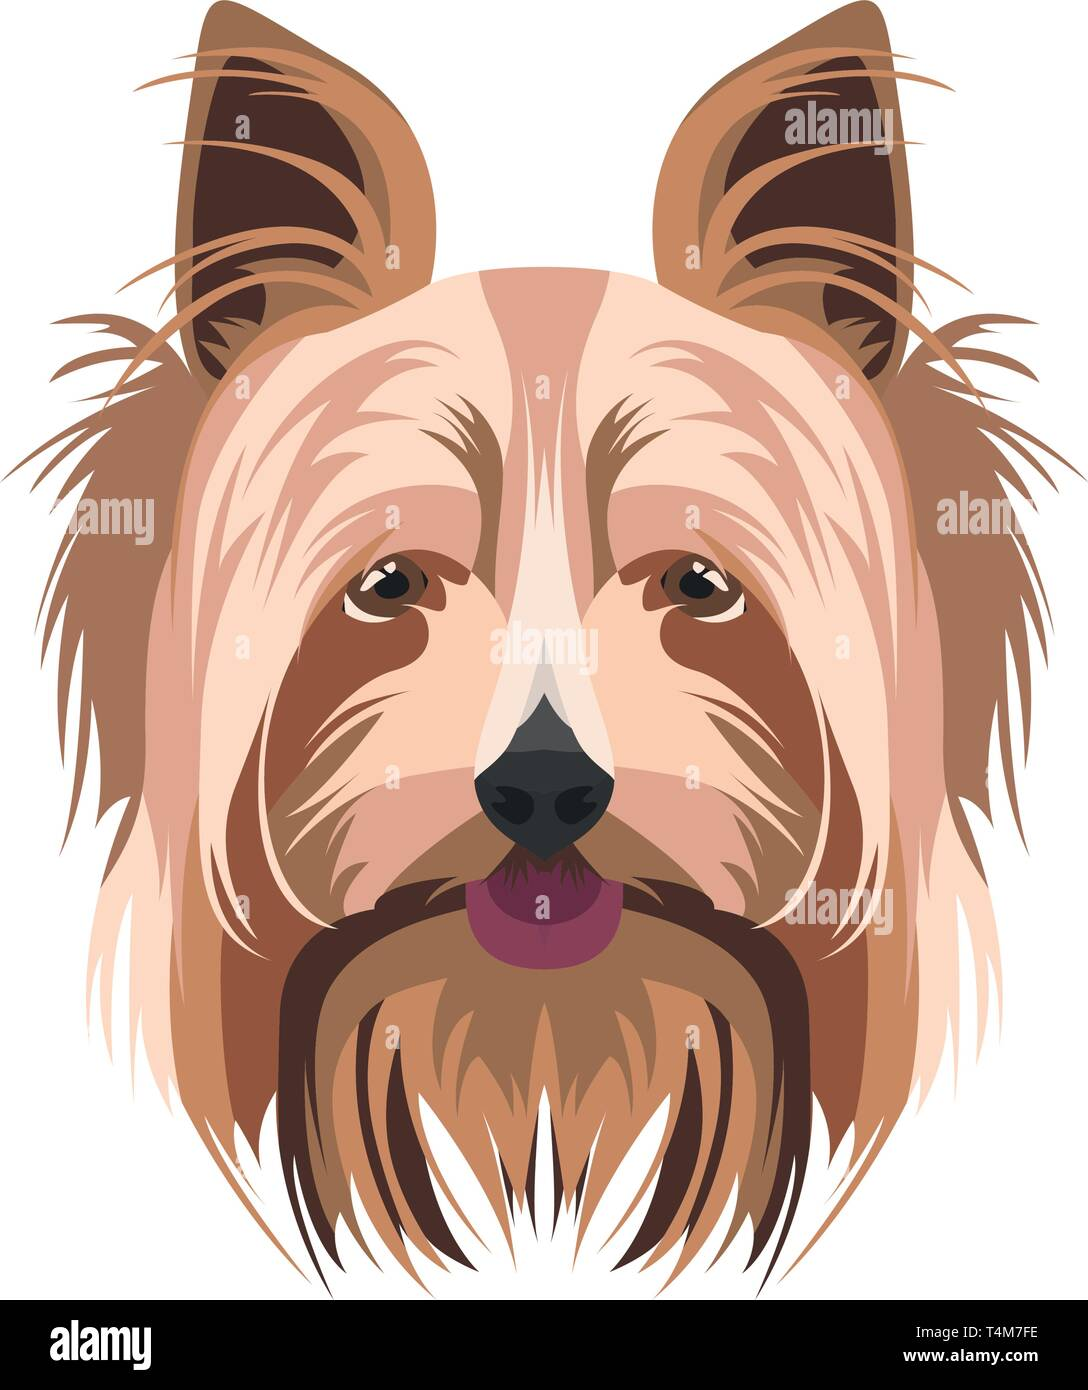 Illustration Yorkshire Terrier   For all dog owners. What you love about his dog? Puppy dog eyes, wagging tail, smiling, barking. The Yorkshire Terr - Stock Image